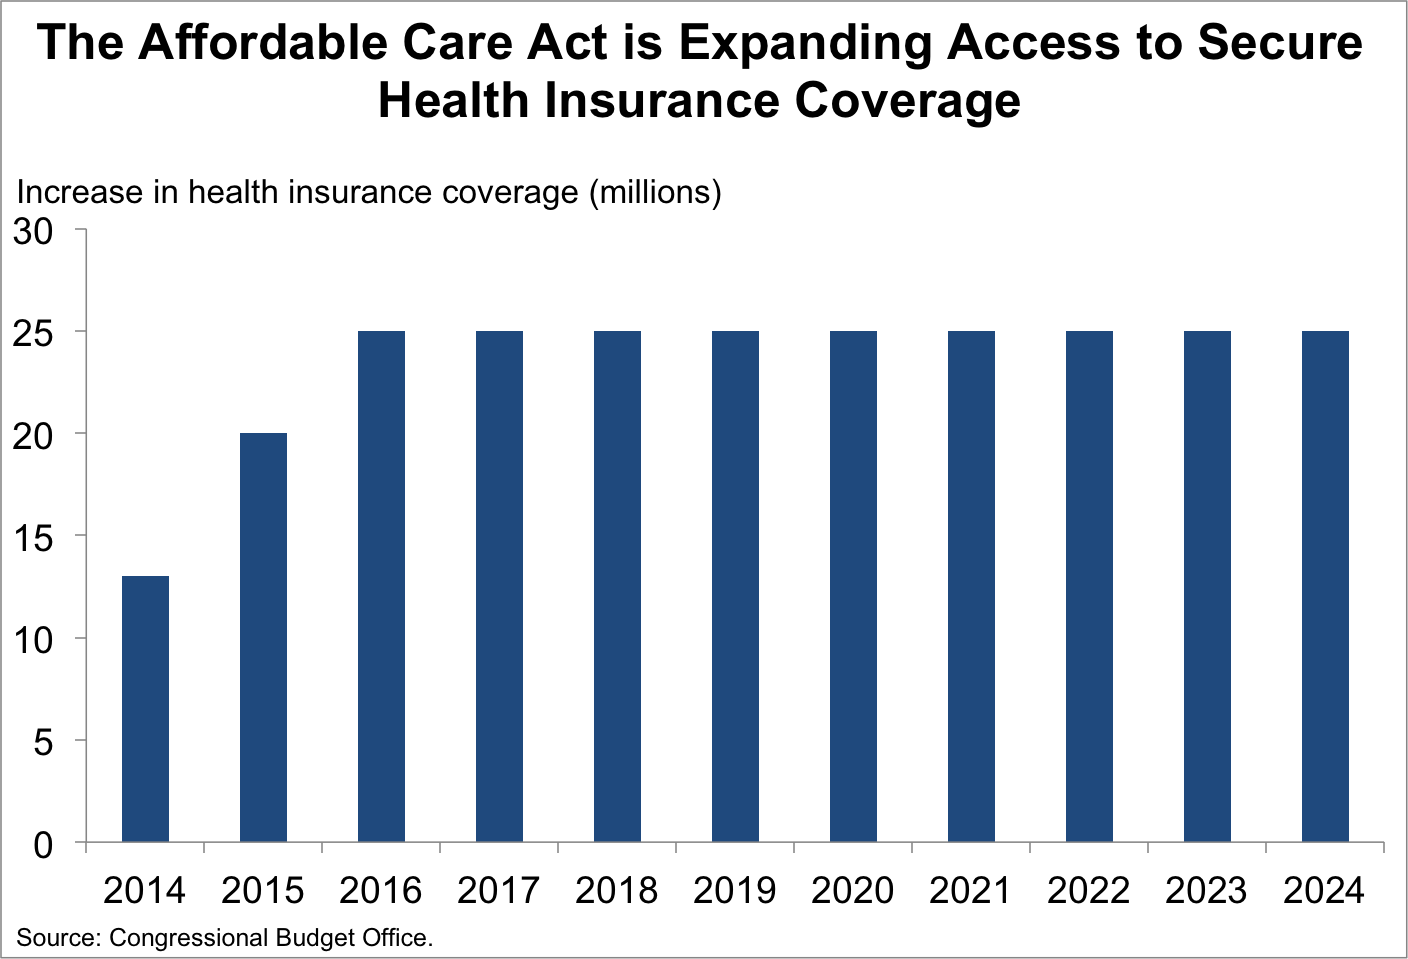 aca is expanding access to health insurance